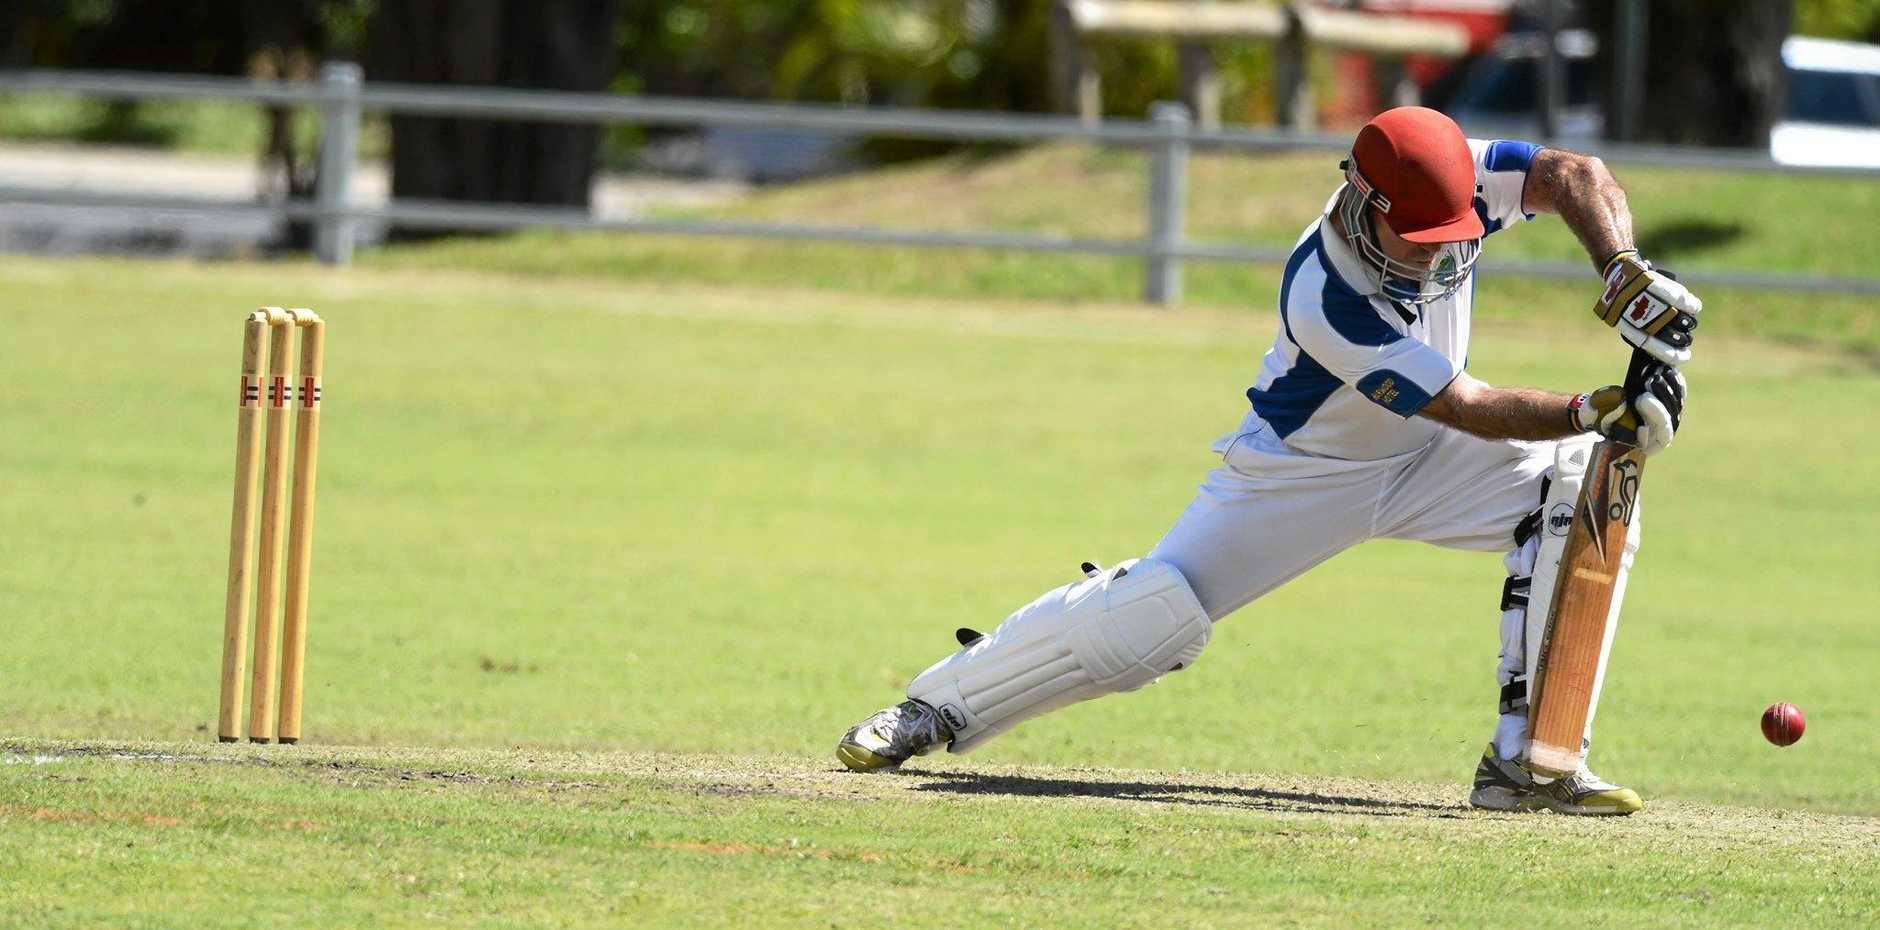 SOLID: Former Harwood Premier League opener Geoff Simmons has been solid at the top since making the jump to LCCA cricket